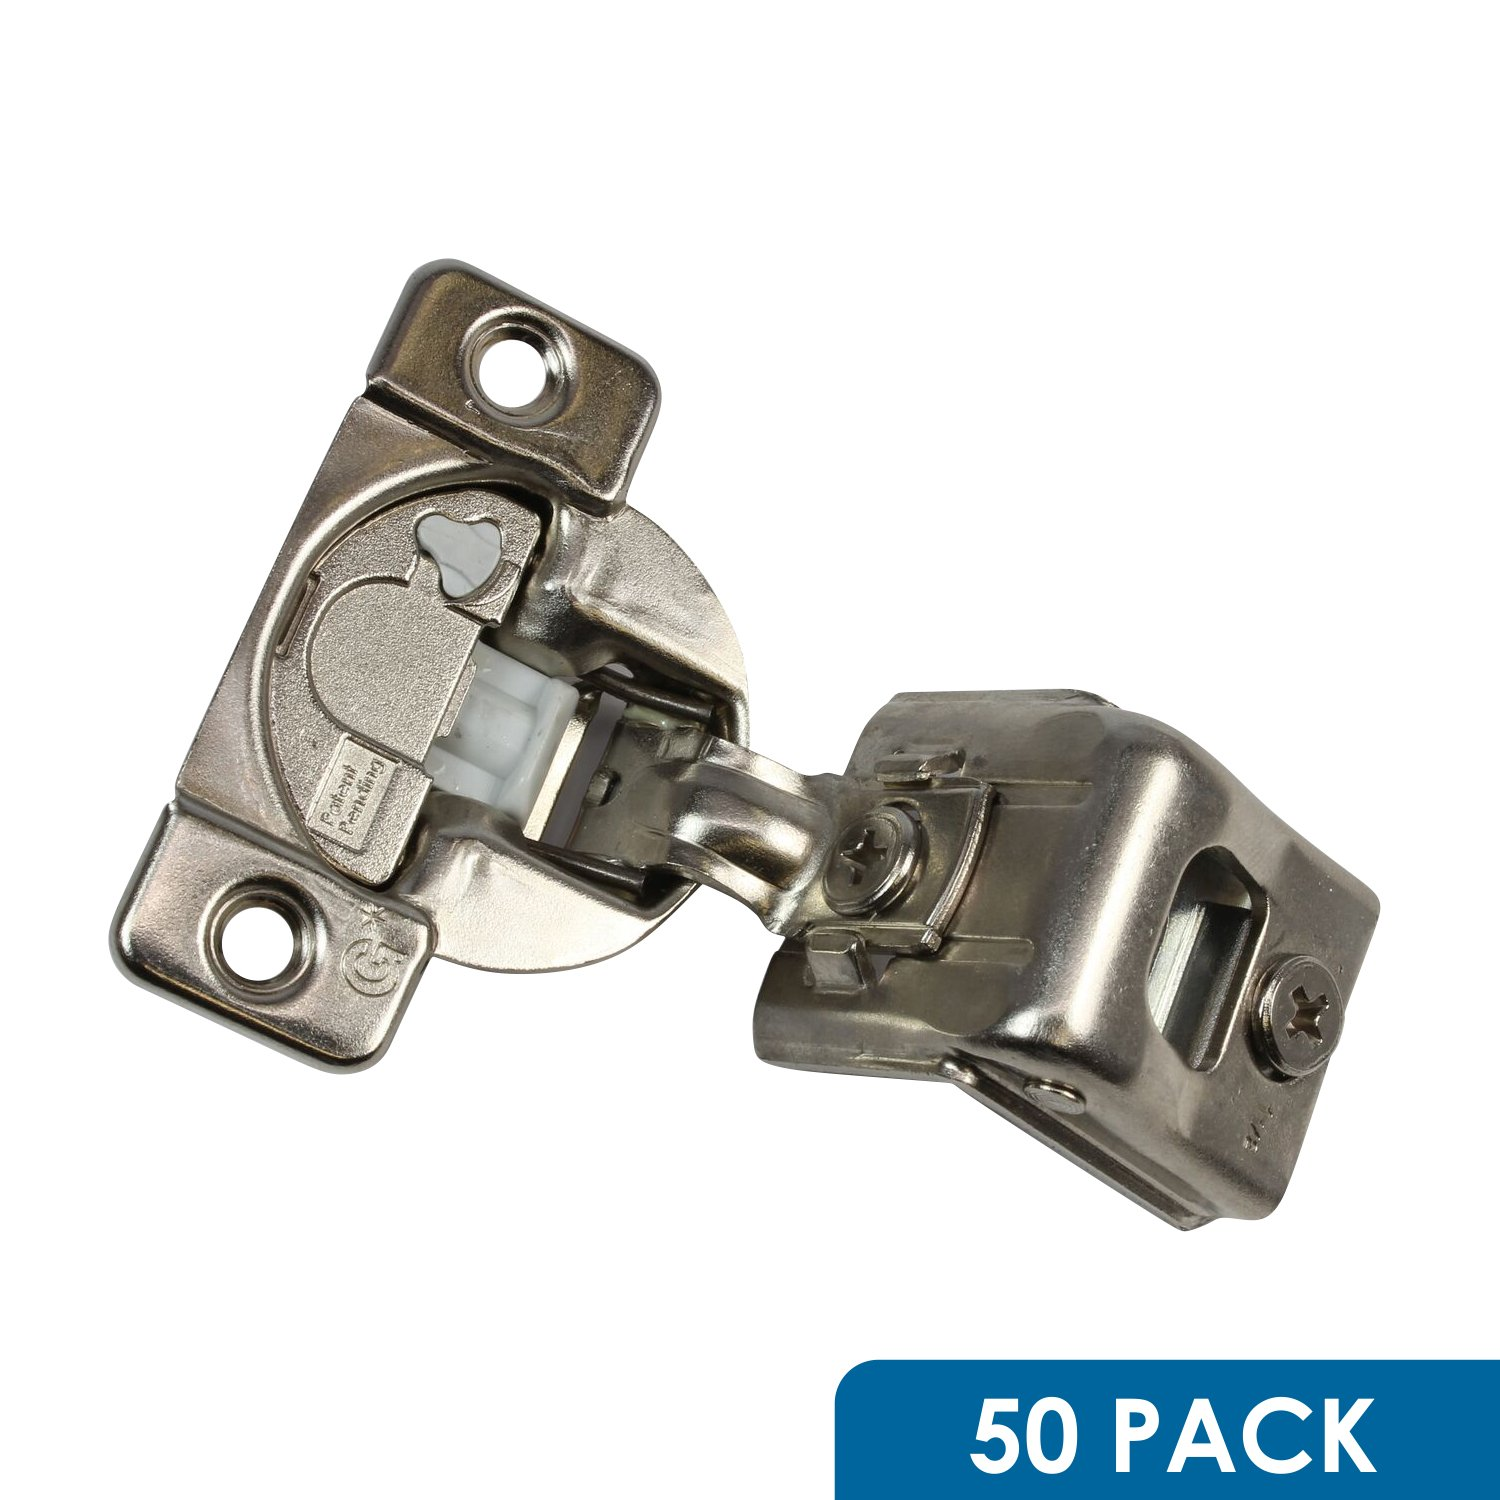 50 Pack Rok Hardware Grass TEC 864 108 Degree 1-1/2'' Overlay 3 Level Soft Close Screw On Compact Cabinet Hinge 04549A-15 3-Way Adjustment 45mm Screw Hole Pattern